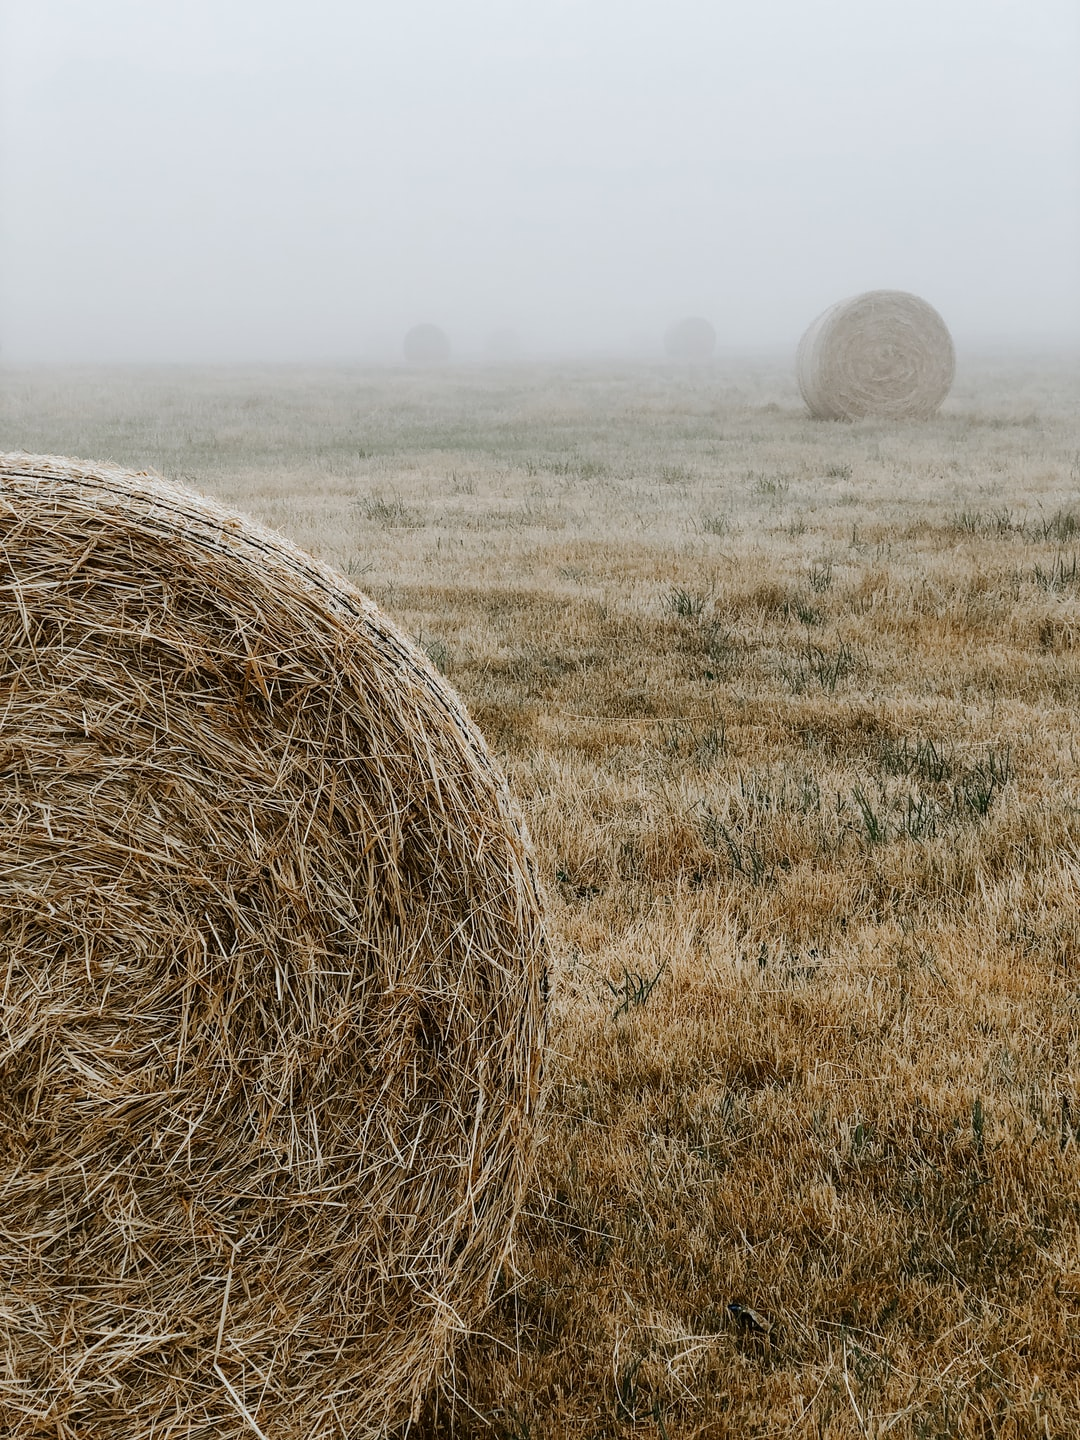 I can't tell you how many times I've driven past these hay bales on the way to work. BUT TODAY… THE FOG! So I had to actually pull over this time and see what I can do. No camera, no drone… only my iPhone X. Hope you can find these useful :)